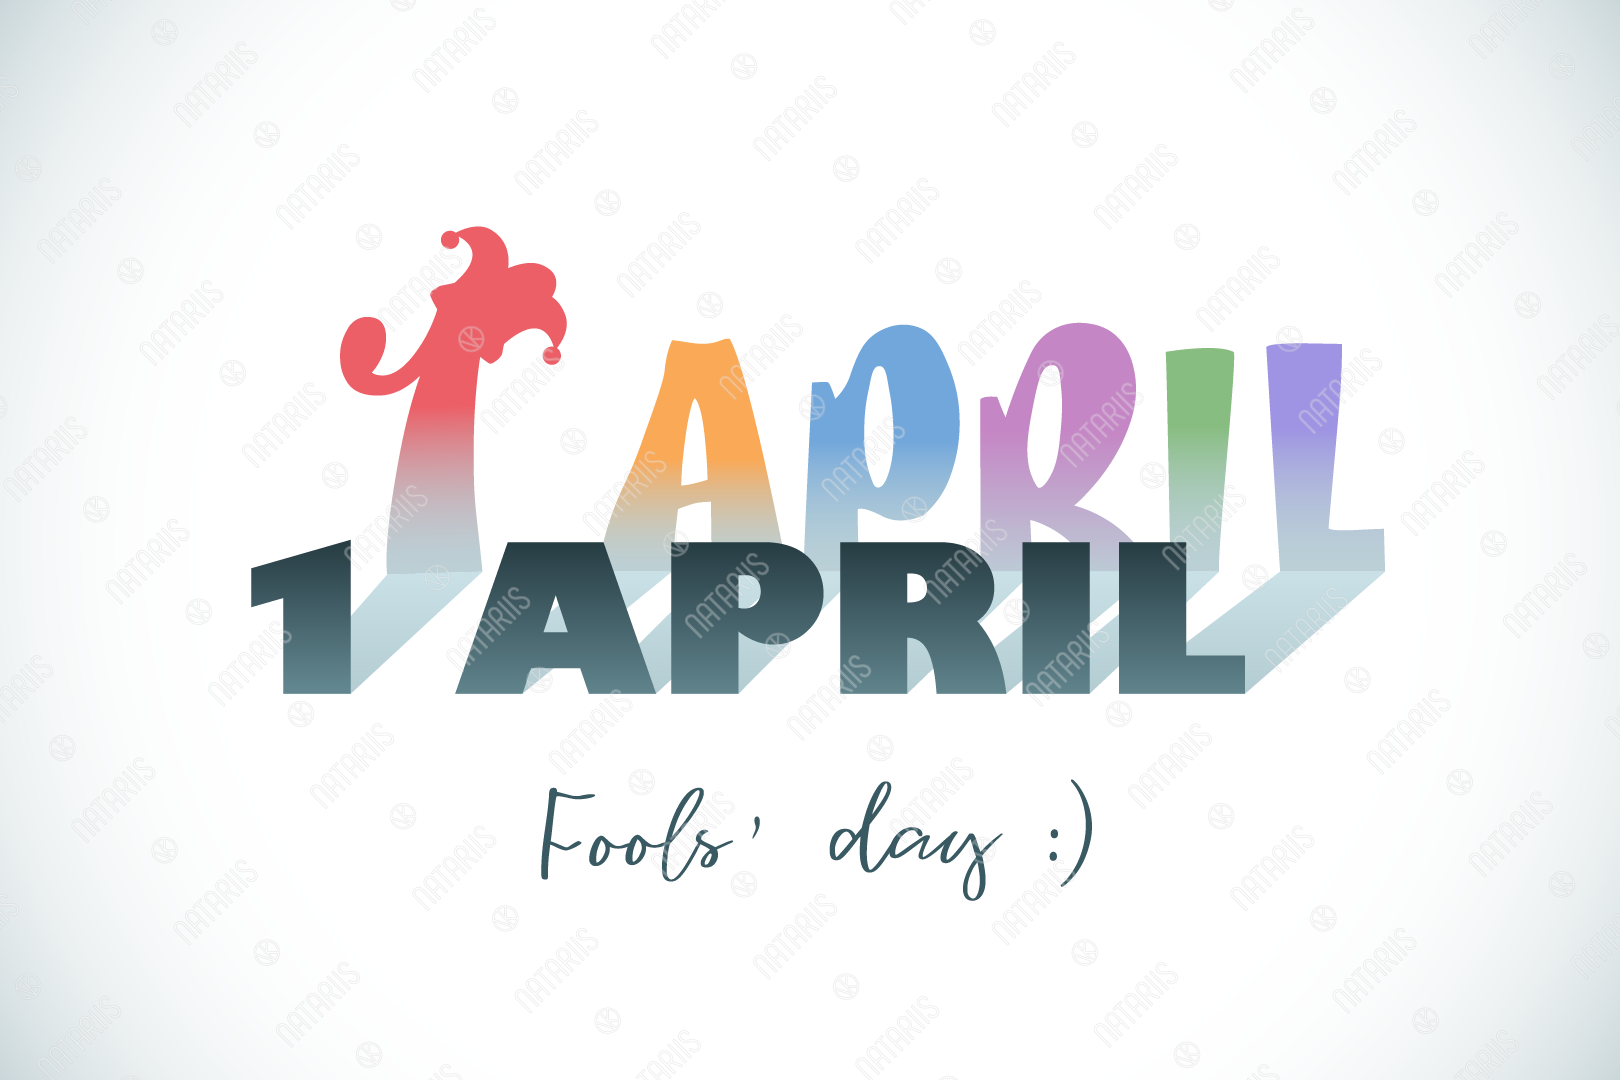 Download Free April 1st Fools Day Graphic By Natariis Studio Creative Fabrica for Cricut Explore, Silhouette and other cutting machines.